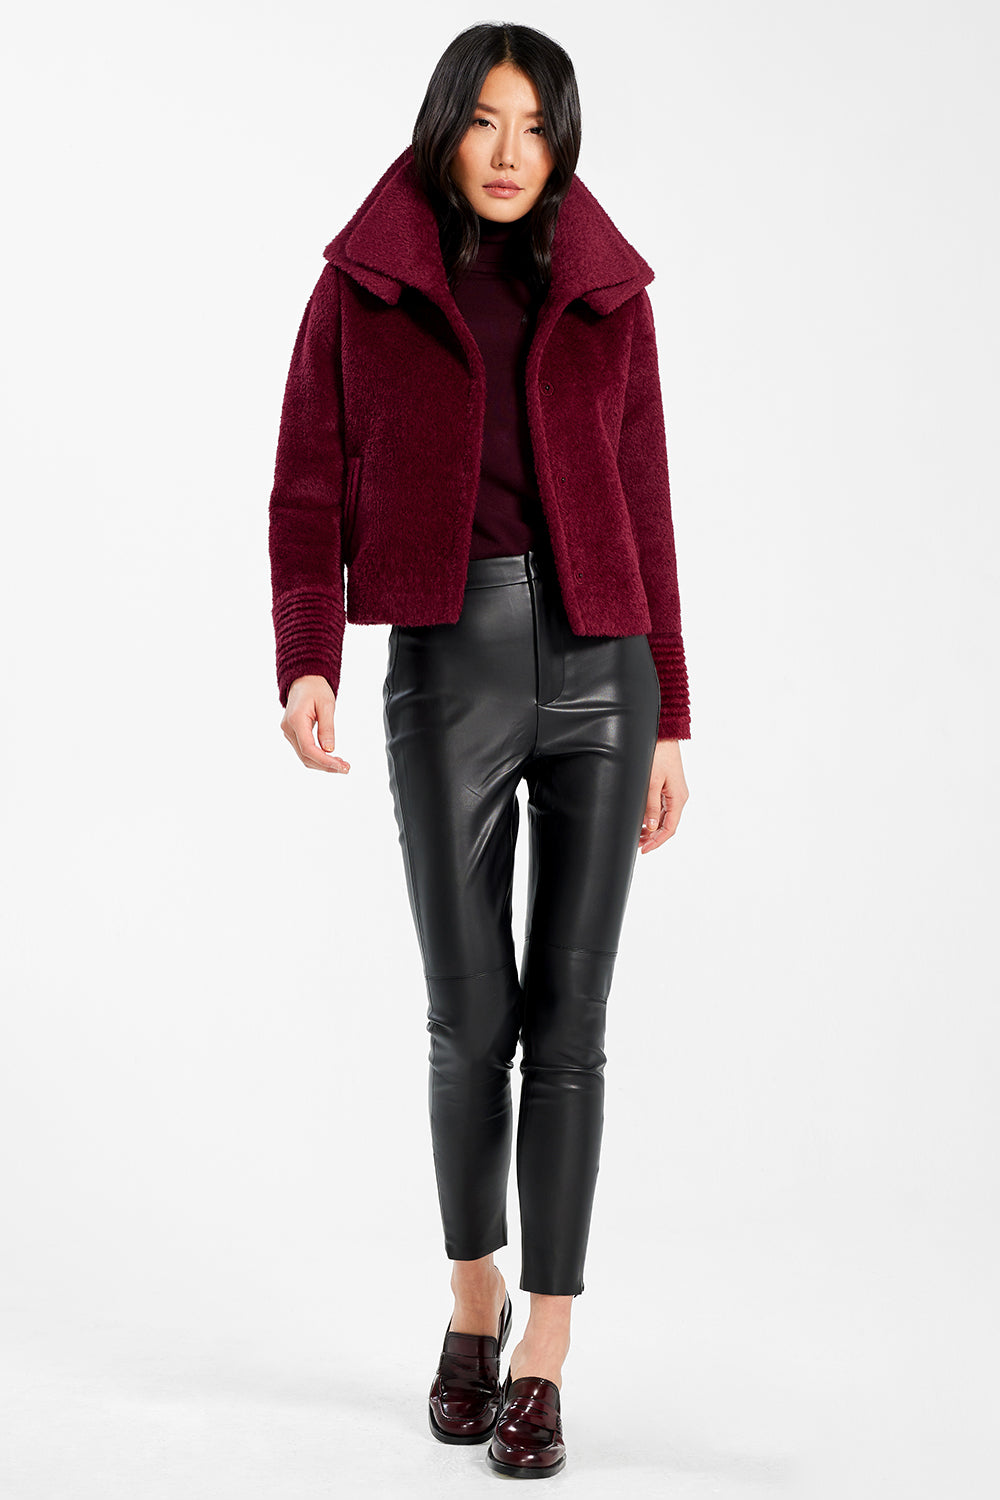 Sentaler Bouclé Alpaca Moto Jacket with Signature Double Collar featured in Bouclé Alpaca and available in Garnet Red. Seen open.